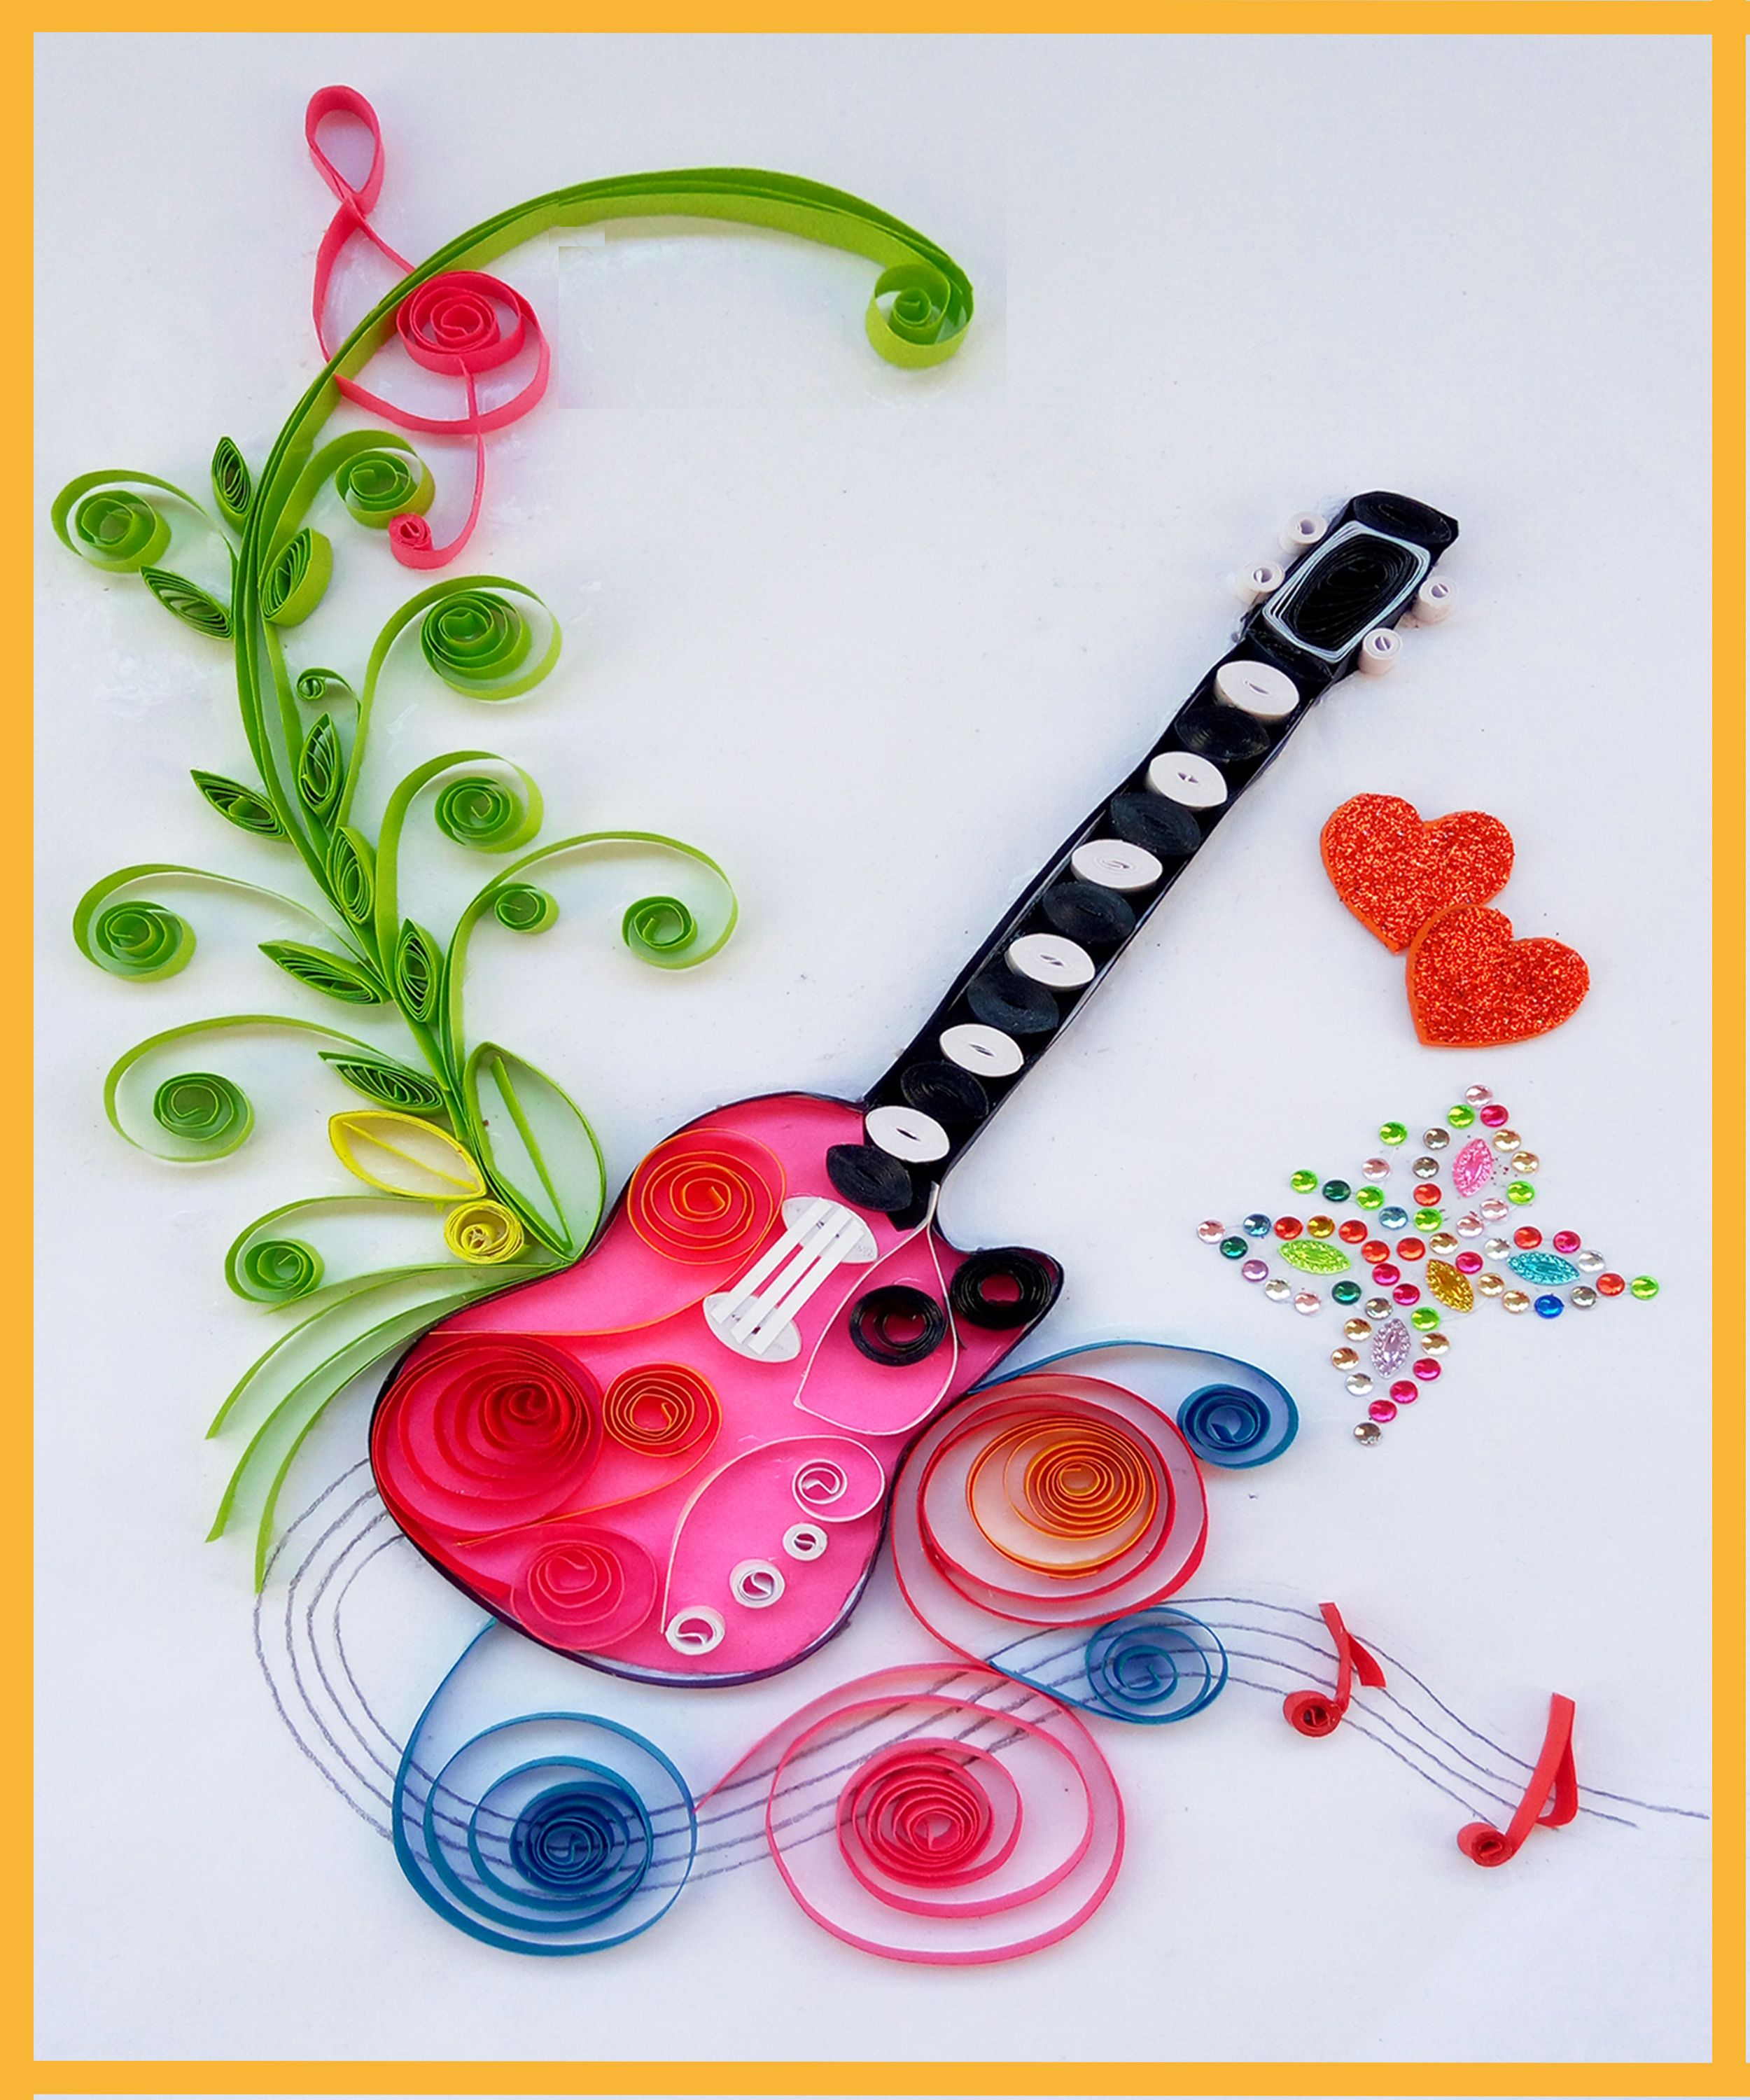 How To Make Quilling Beautiful Guitar Birthday Greeting Card Paper Quilling Art Dear All This Paper Quilling Jewelry Paper Quilling Designs Paper Quilling